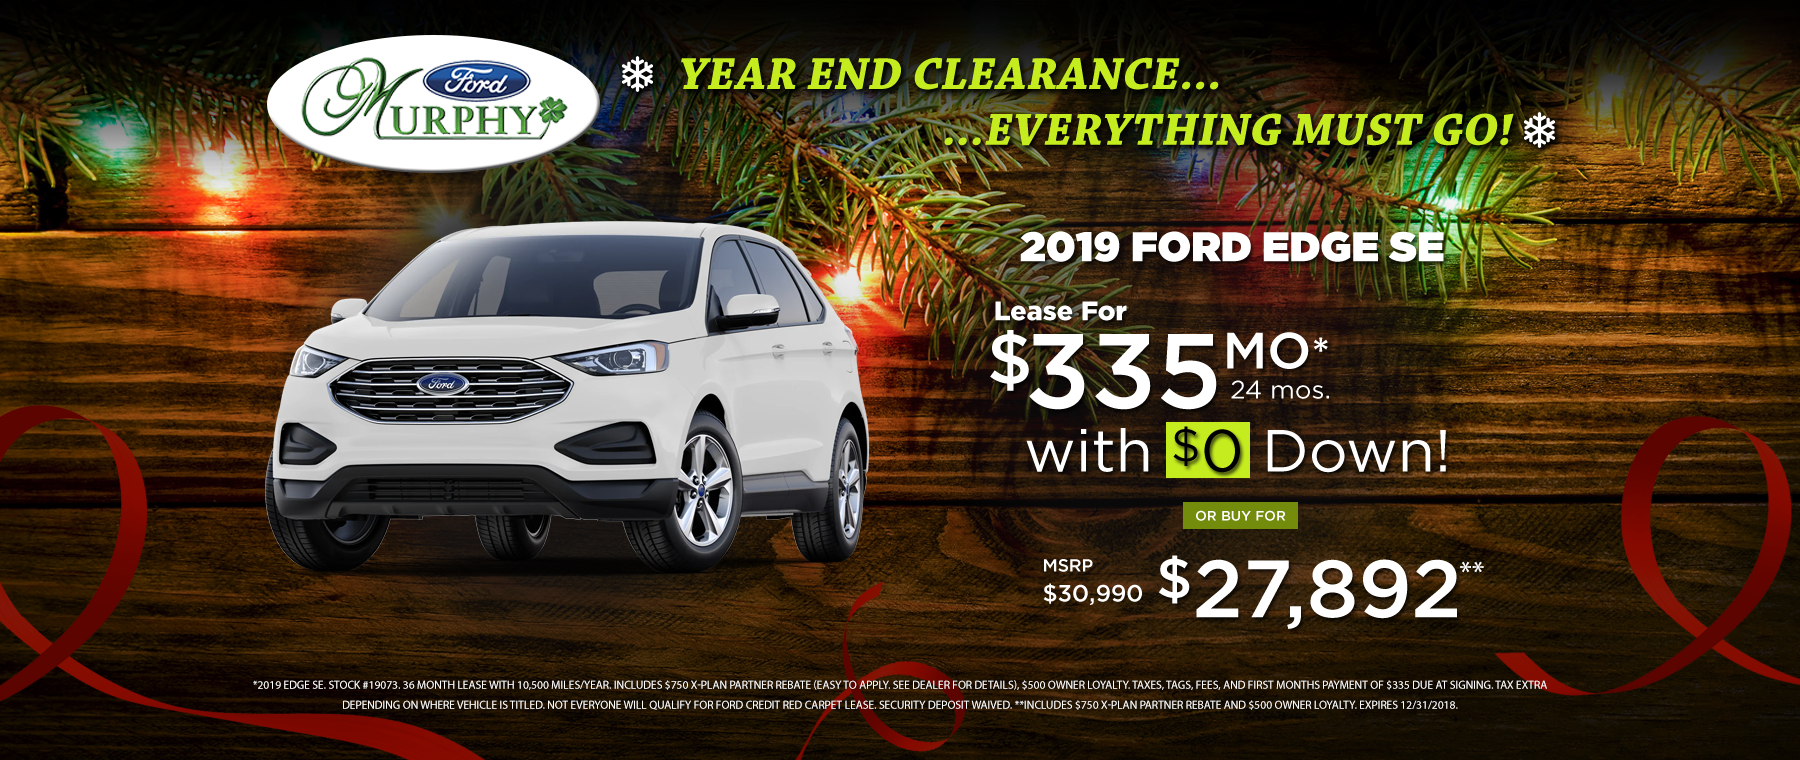 2019 Ford Edge December Lease Offer